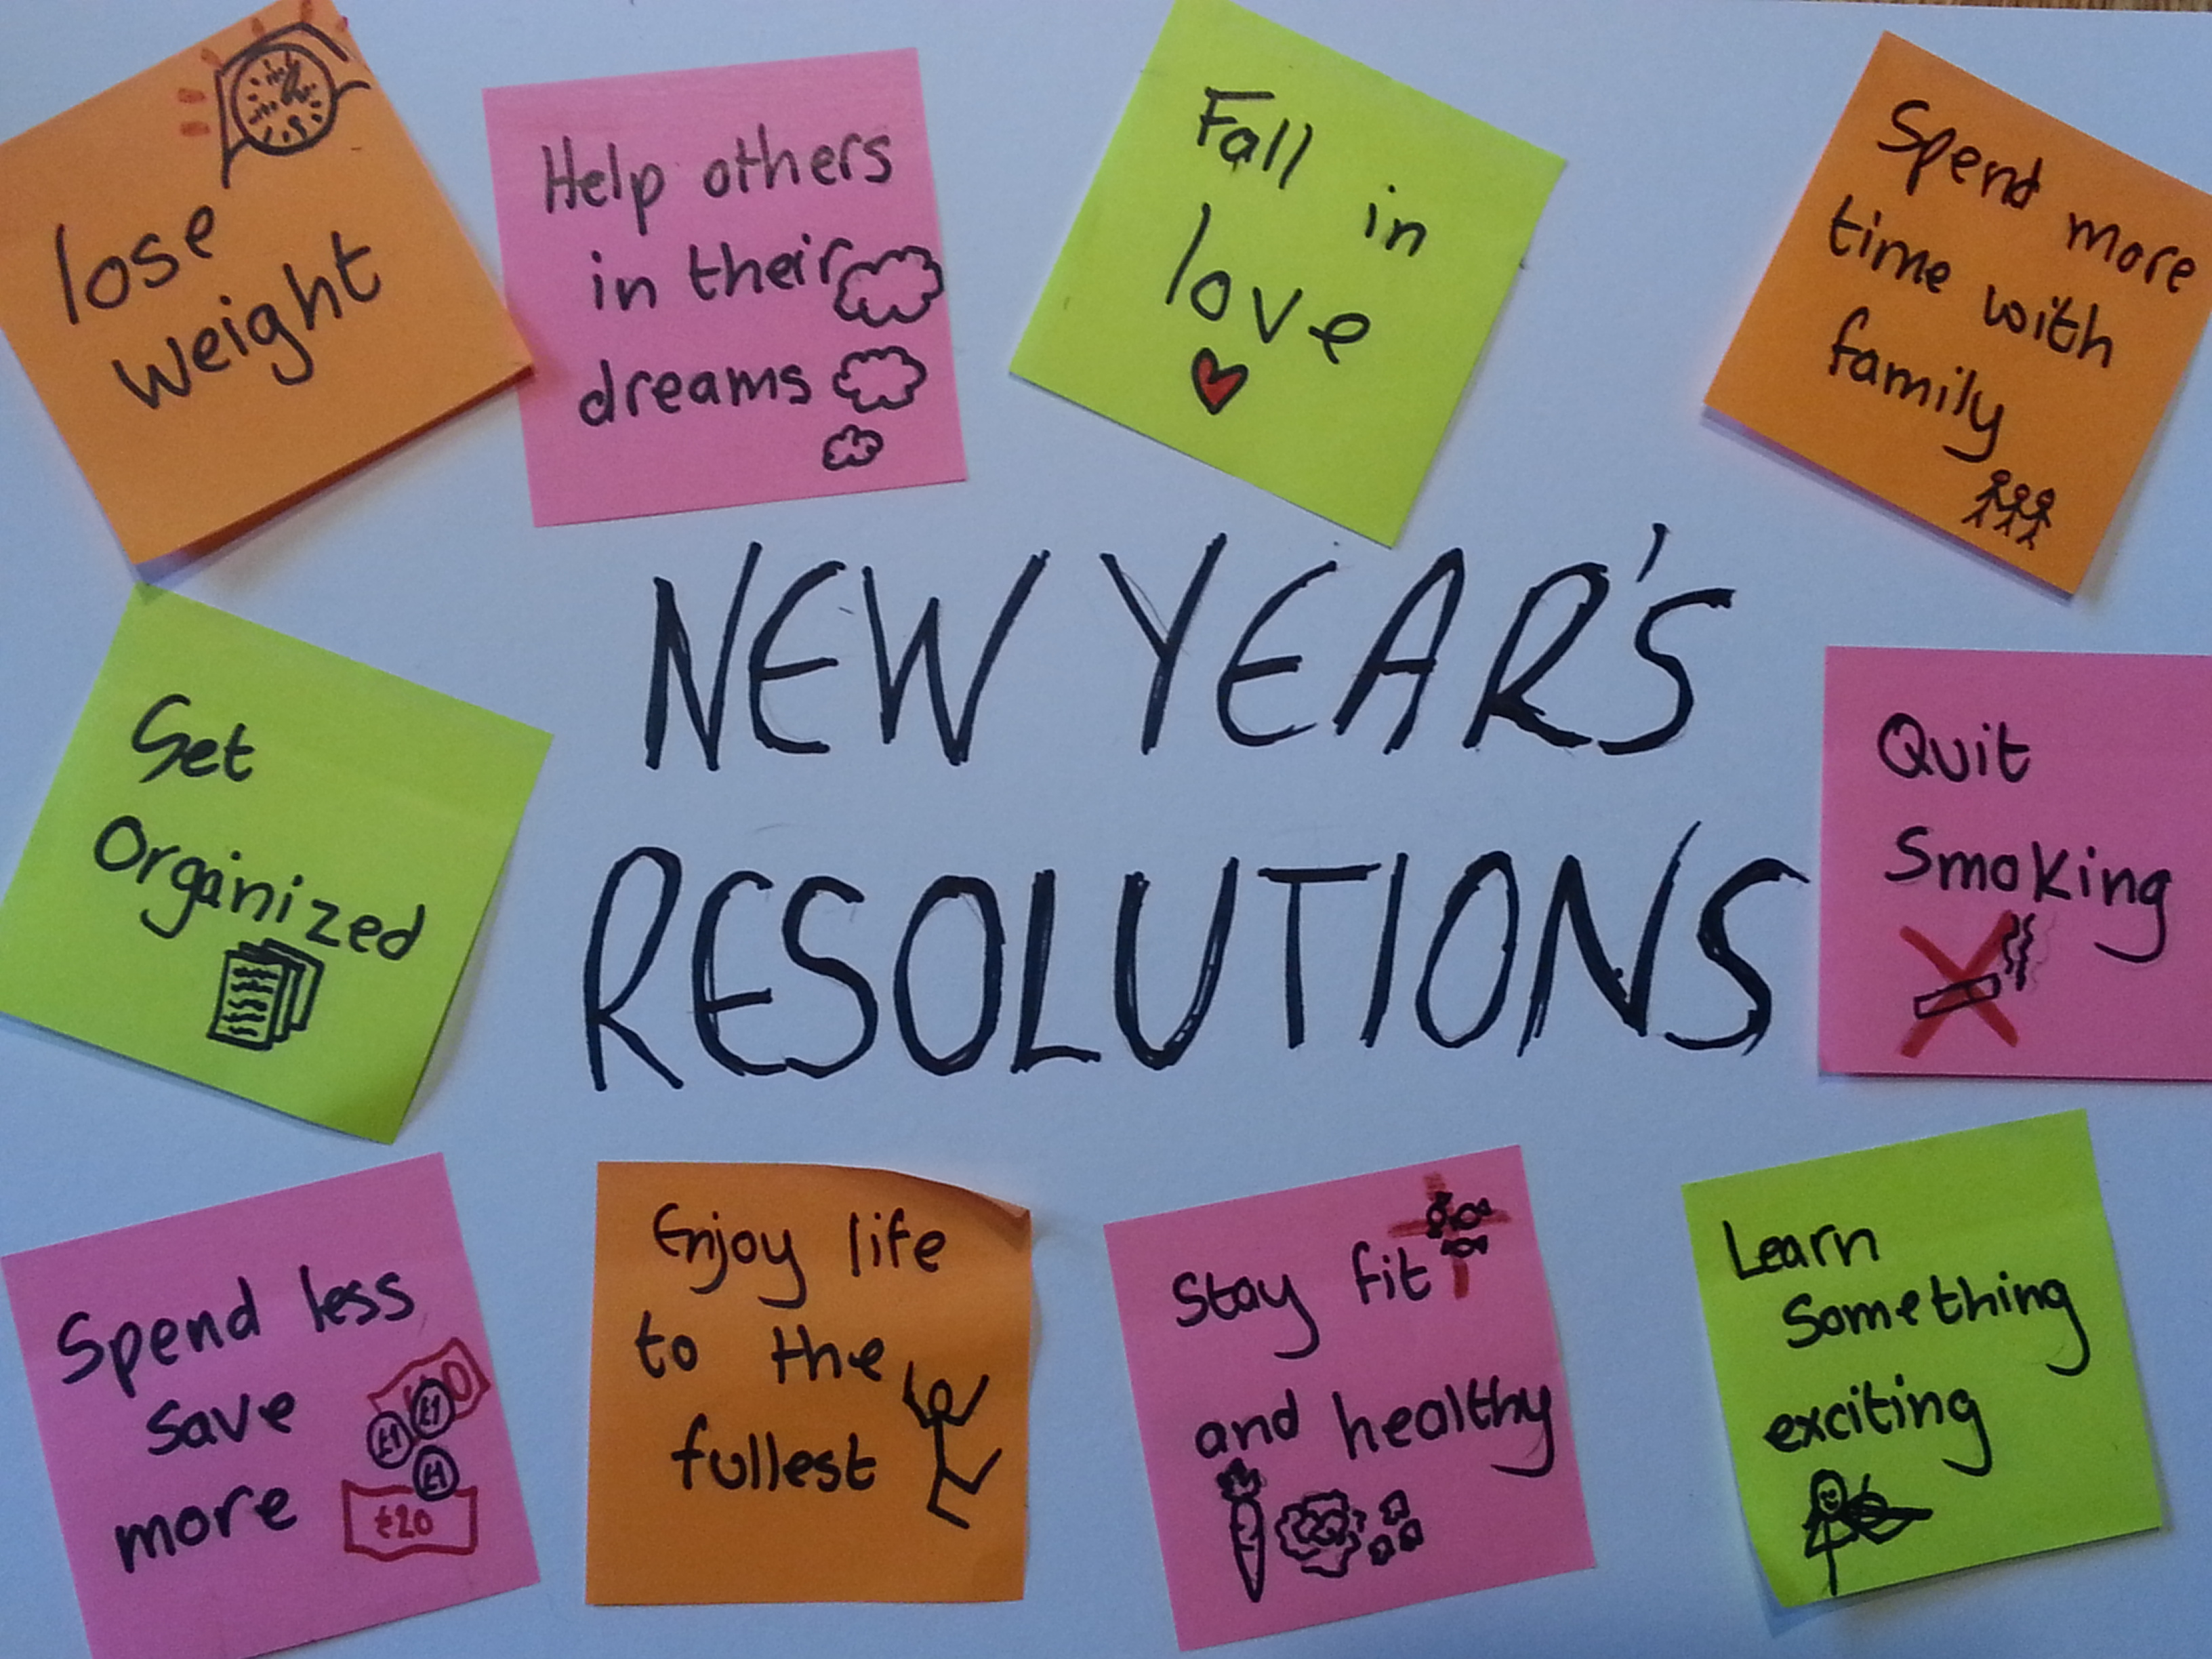 Top 10 New Years Resolutions For 2014 Journal Of Clinical Psychology. Image  Courtesy Of Instagram